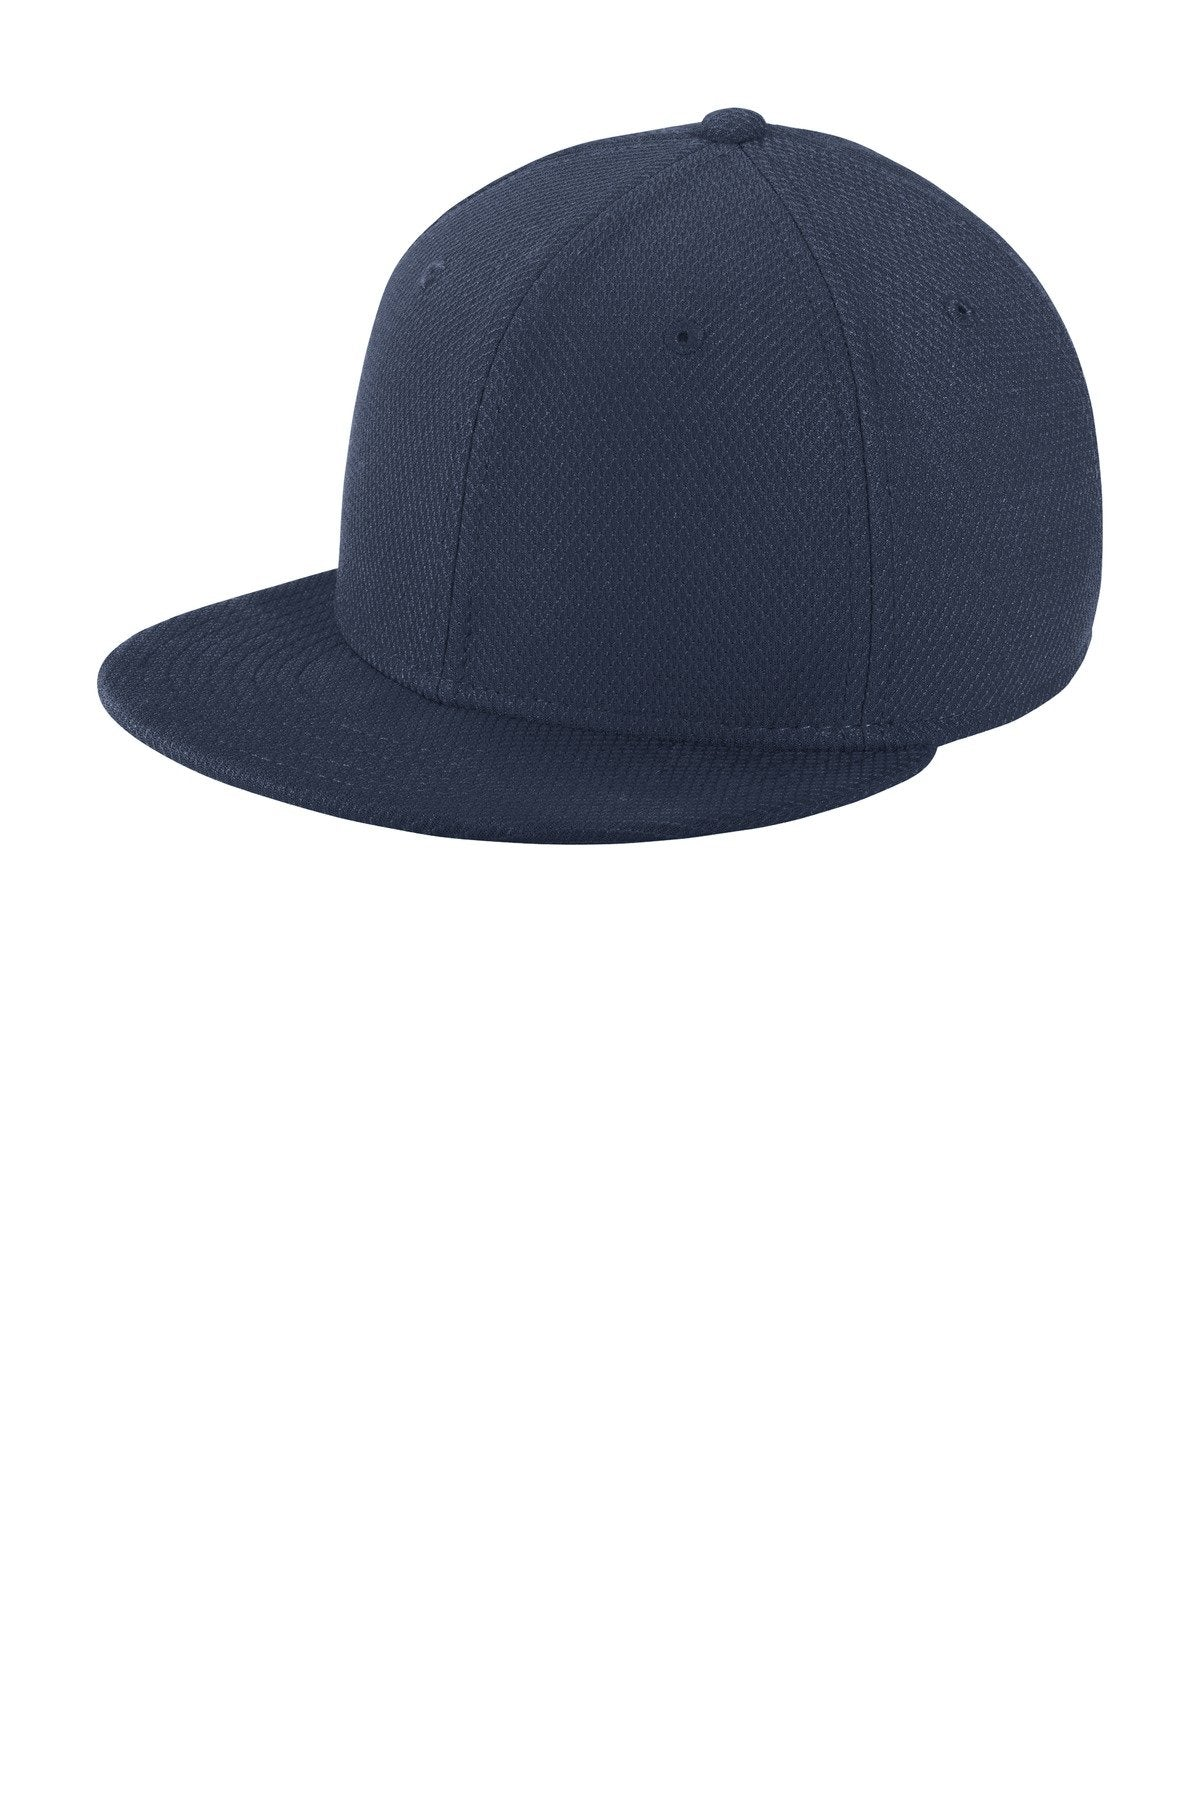 True Navy - New Era NE304